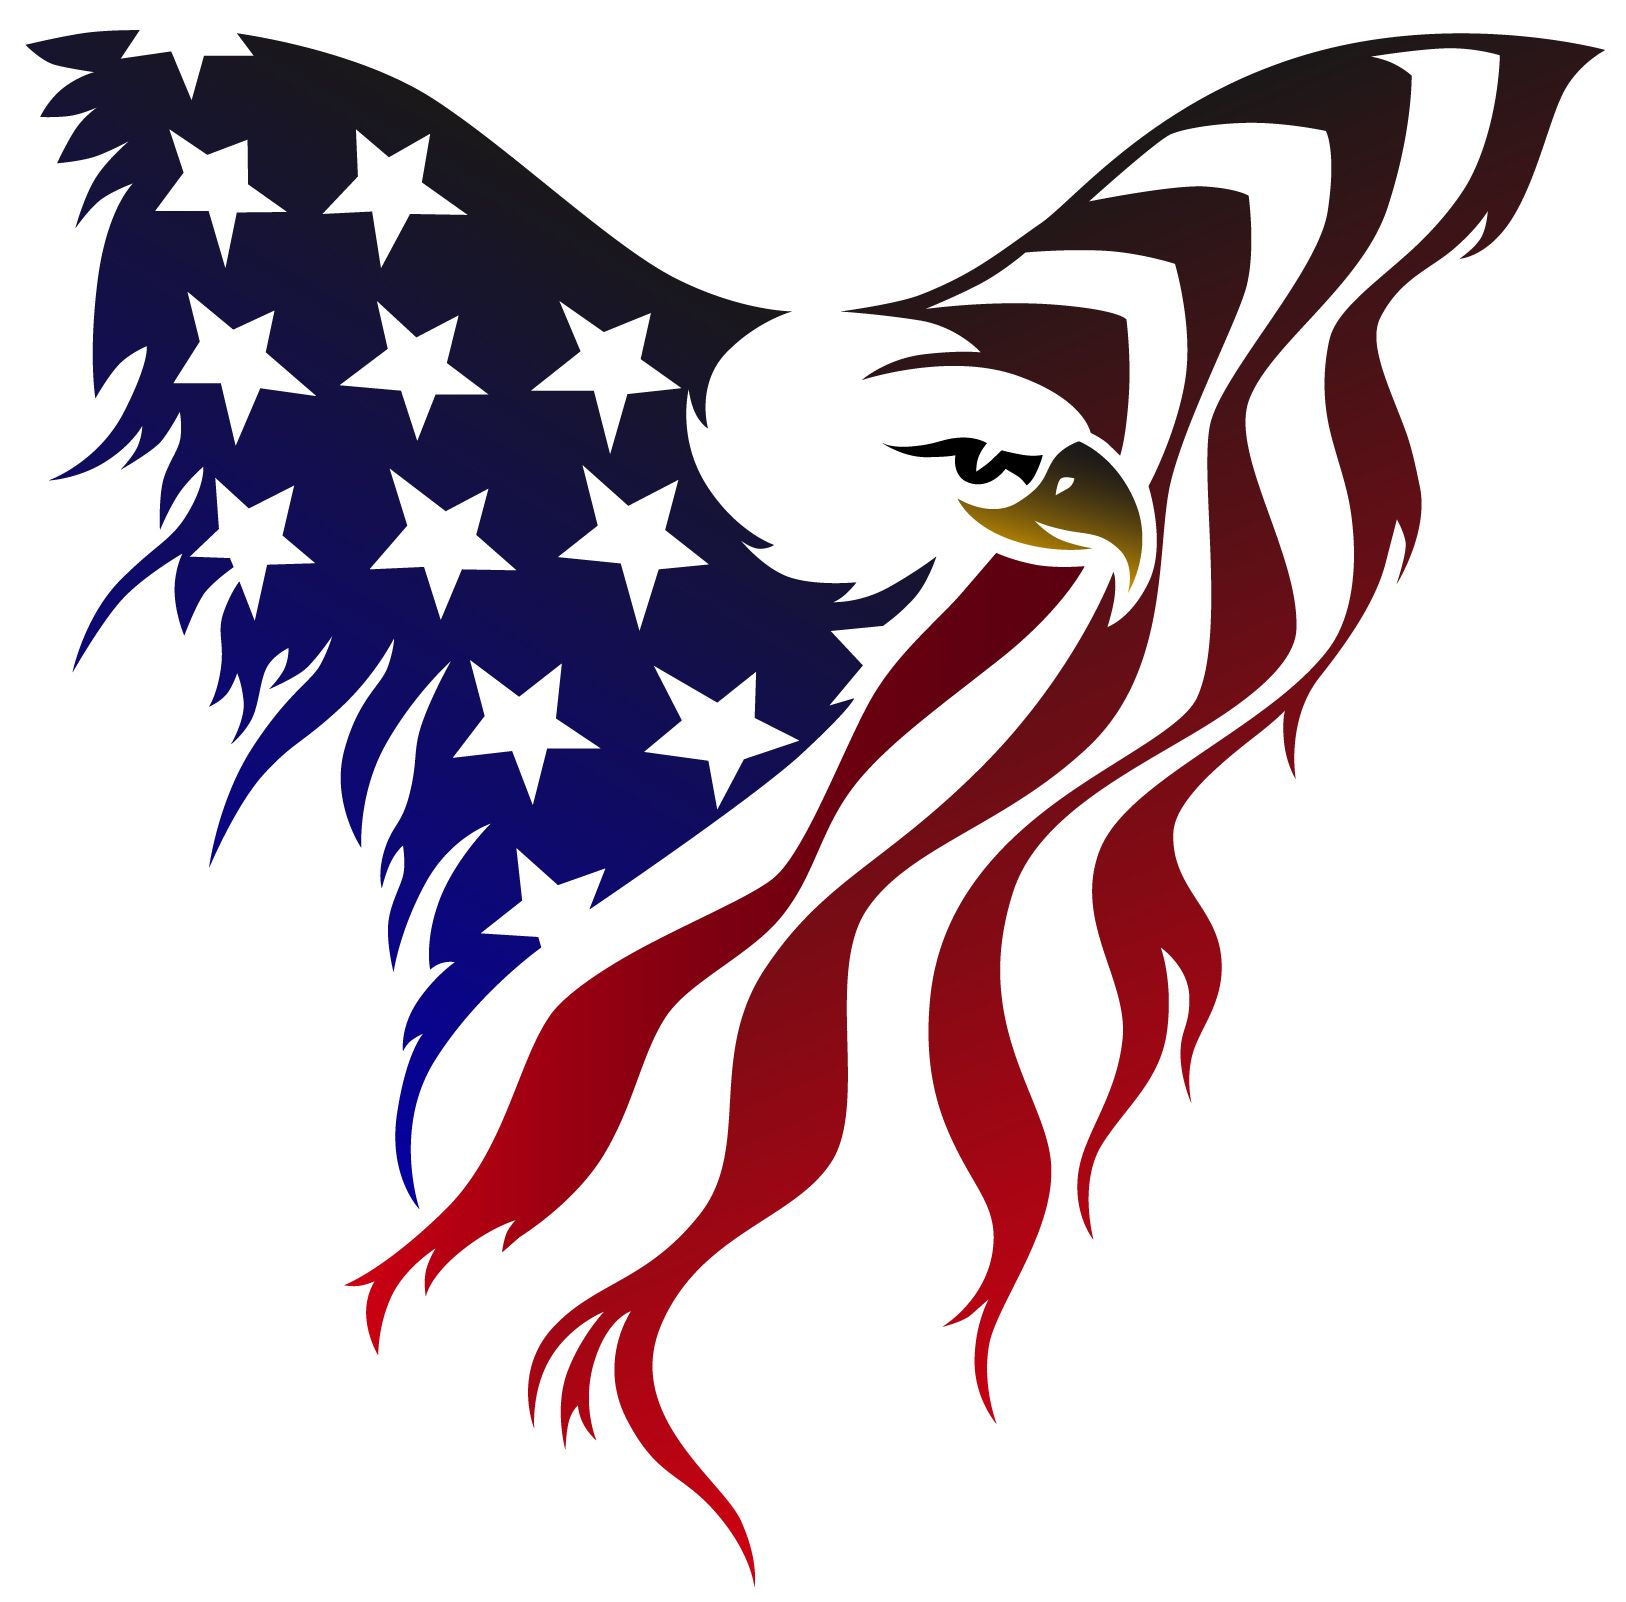 d45f634bce88 american flag eagle tattoo. Great car decal for back window. More